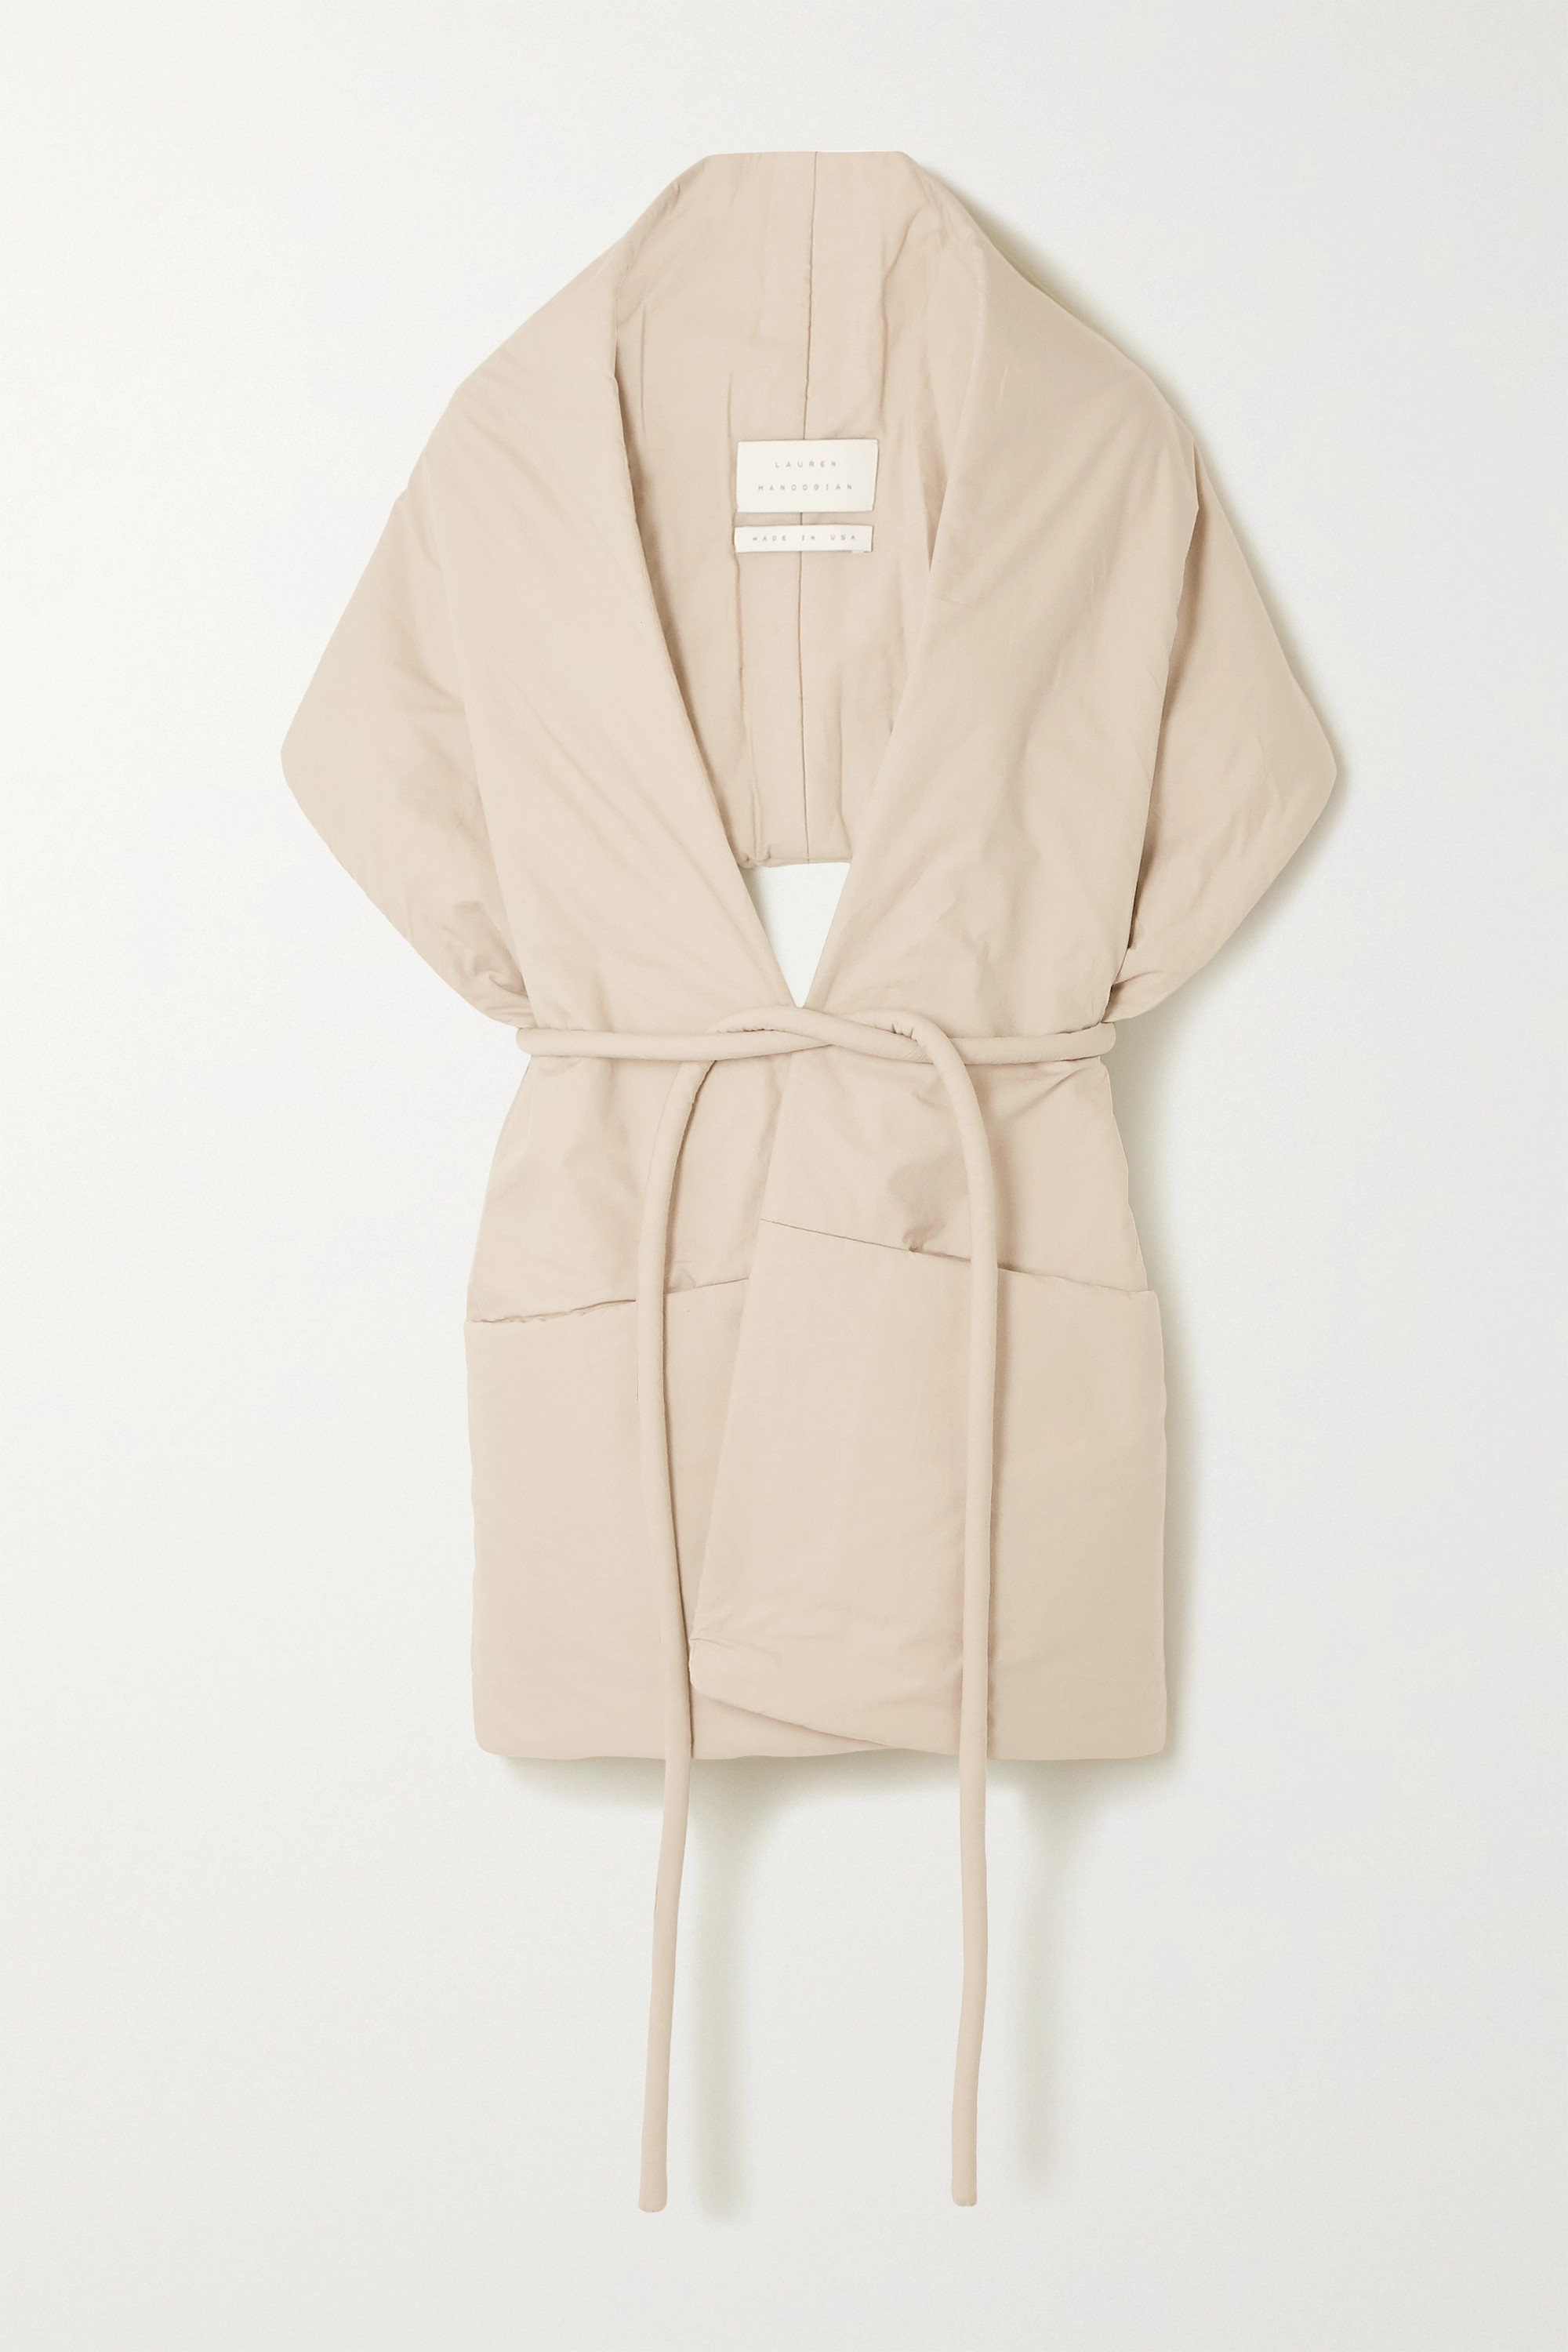 Lauren Manoogian Belted padded cotton wrap